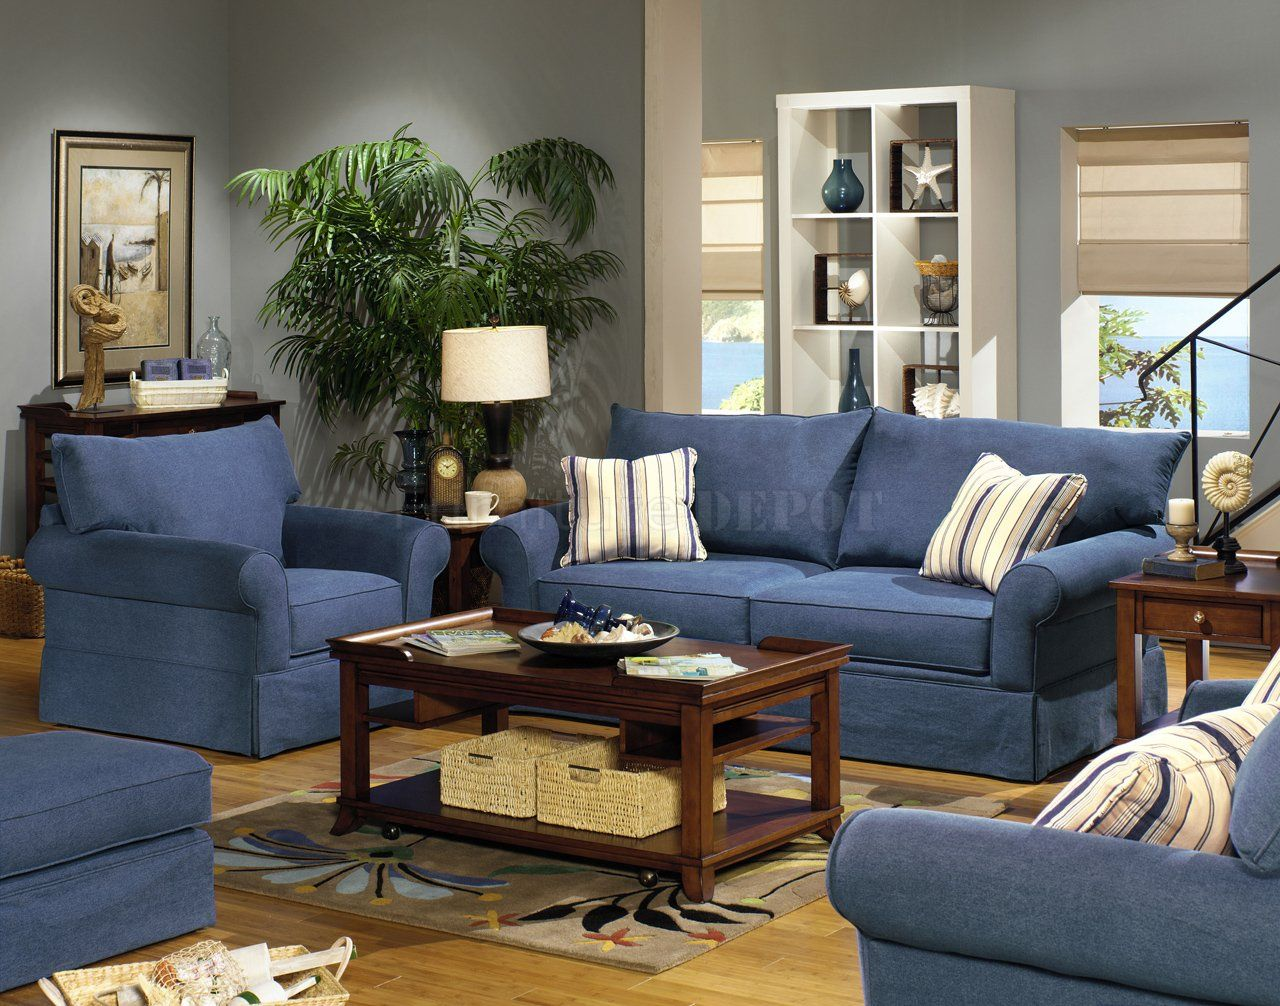 Blue living room furniture sets blue denim fabric modern sofa loveseat set w options ideas Living room loveseats